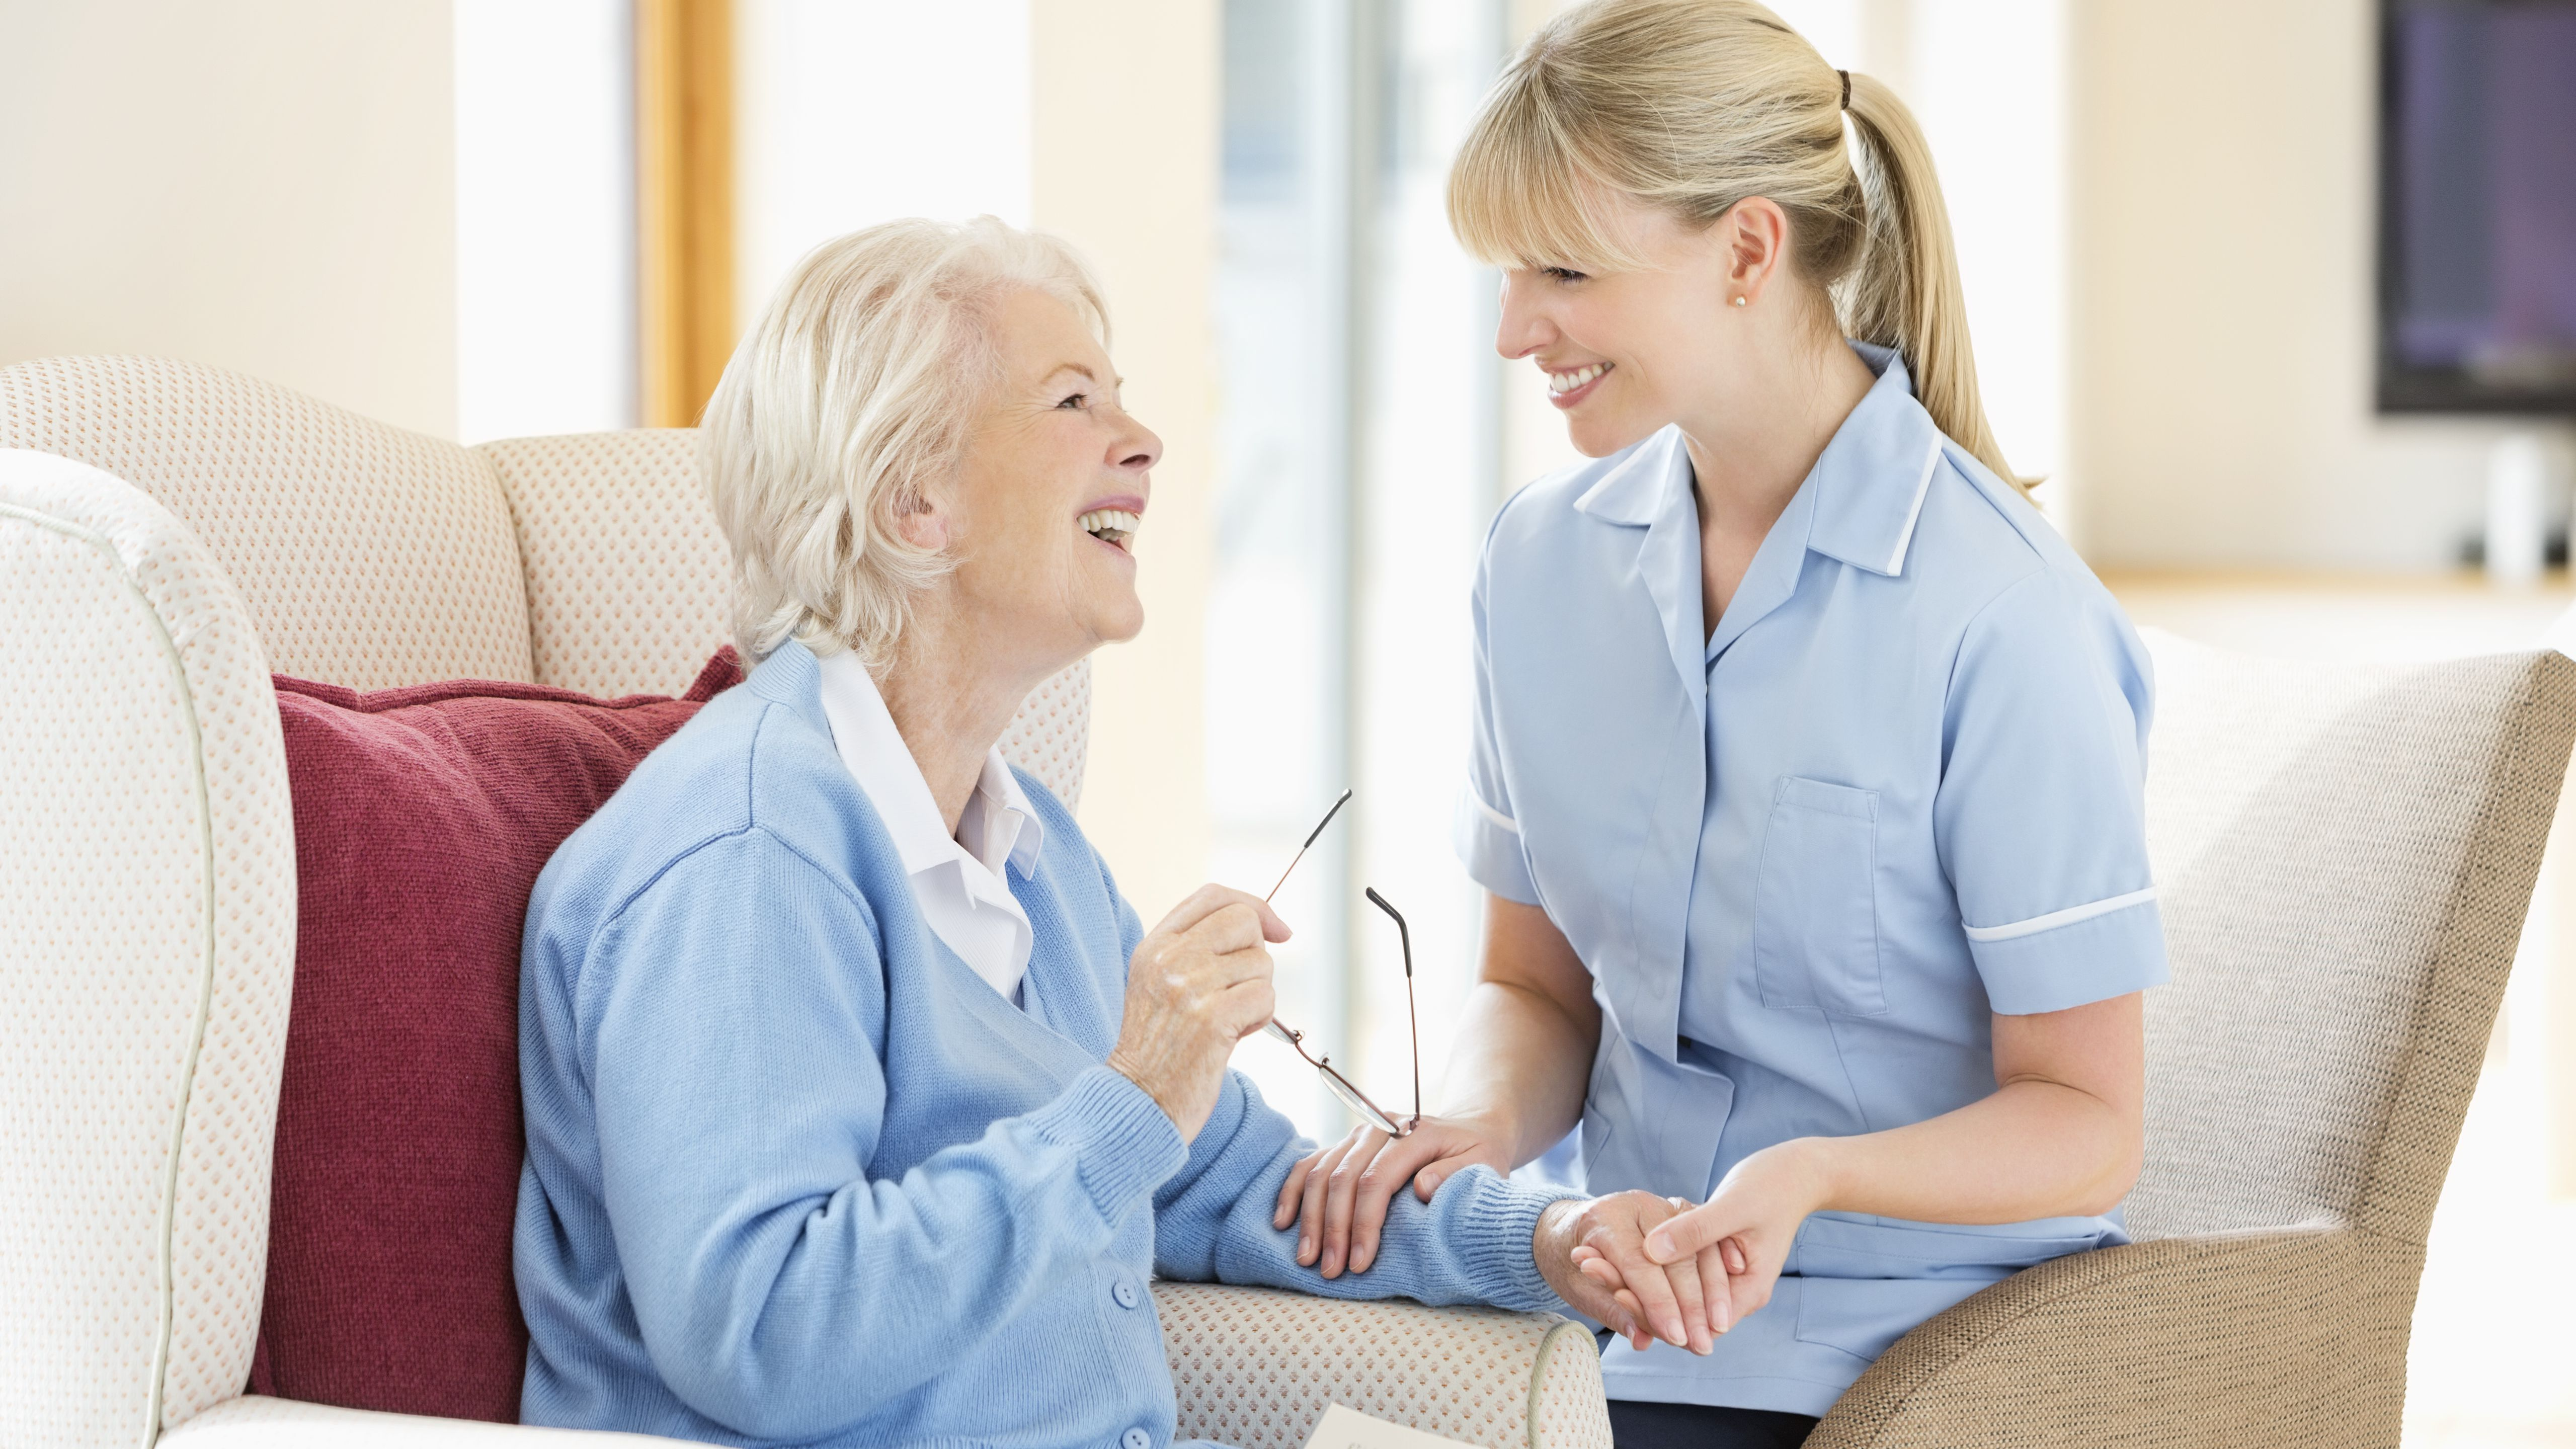 Important Job Skills for Home Health Aides